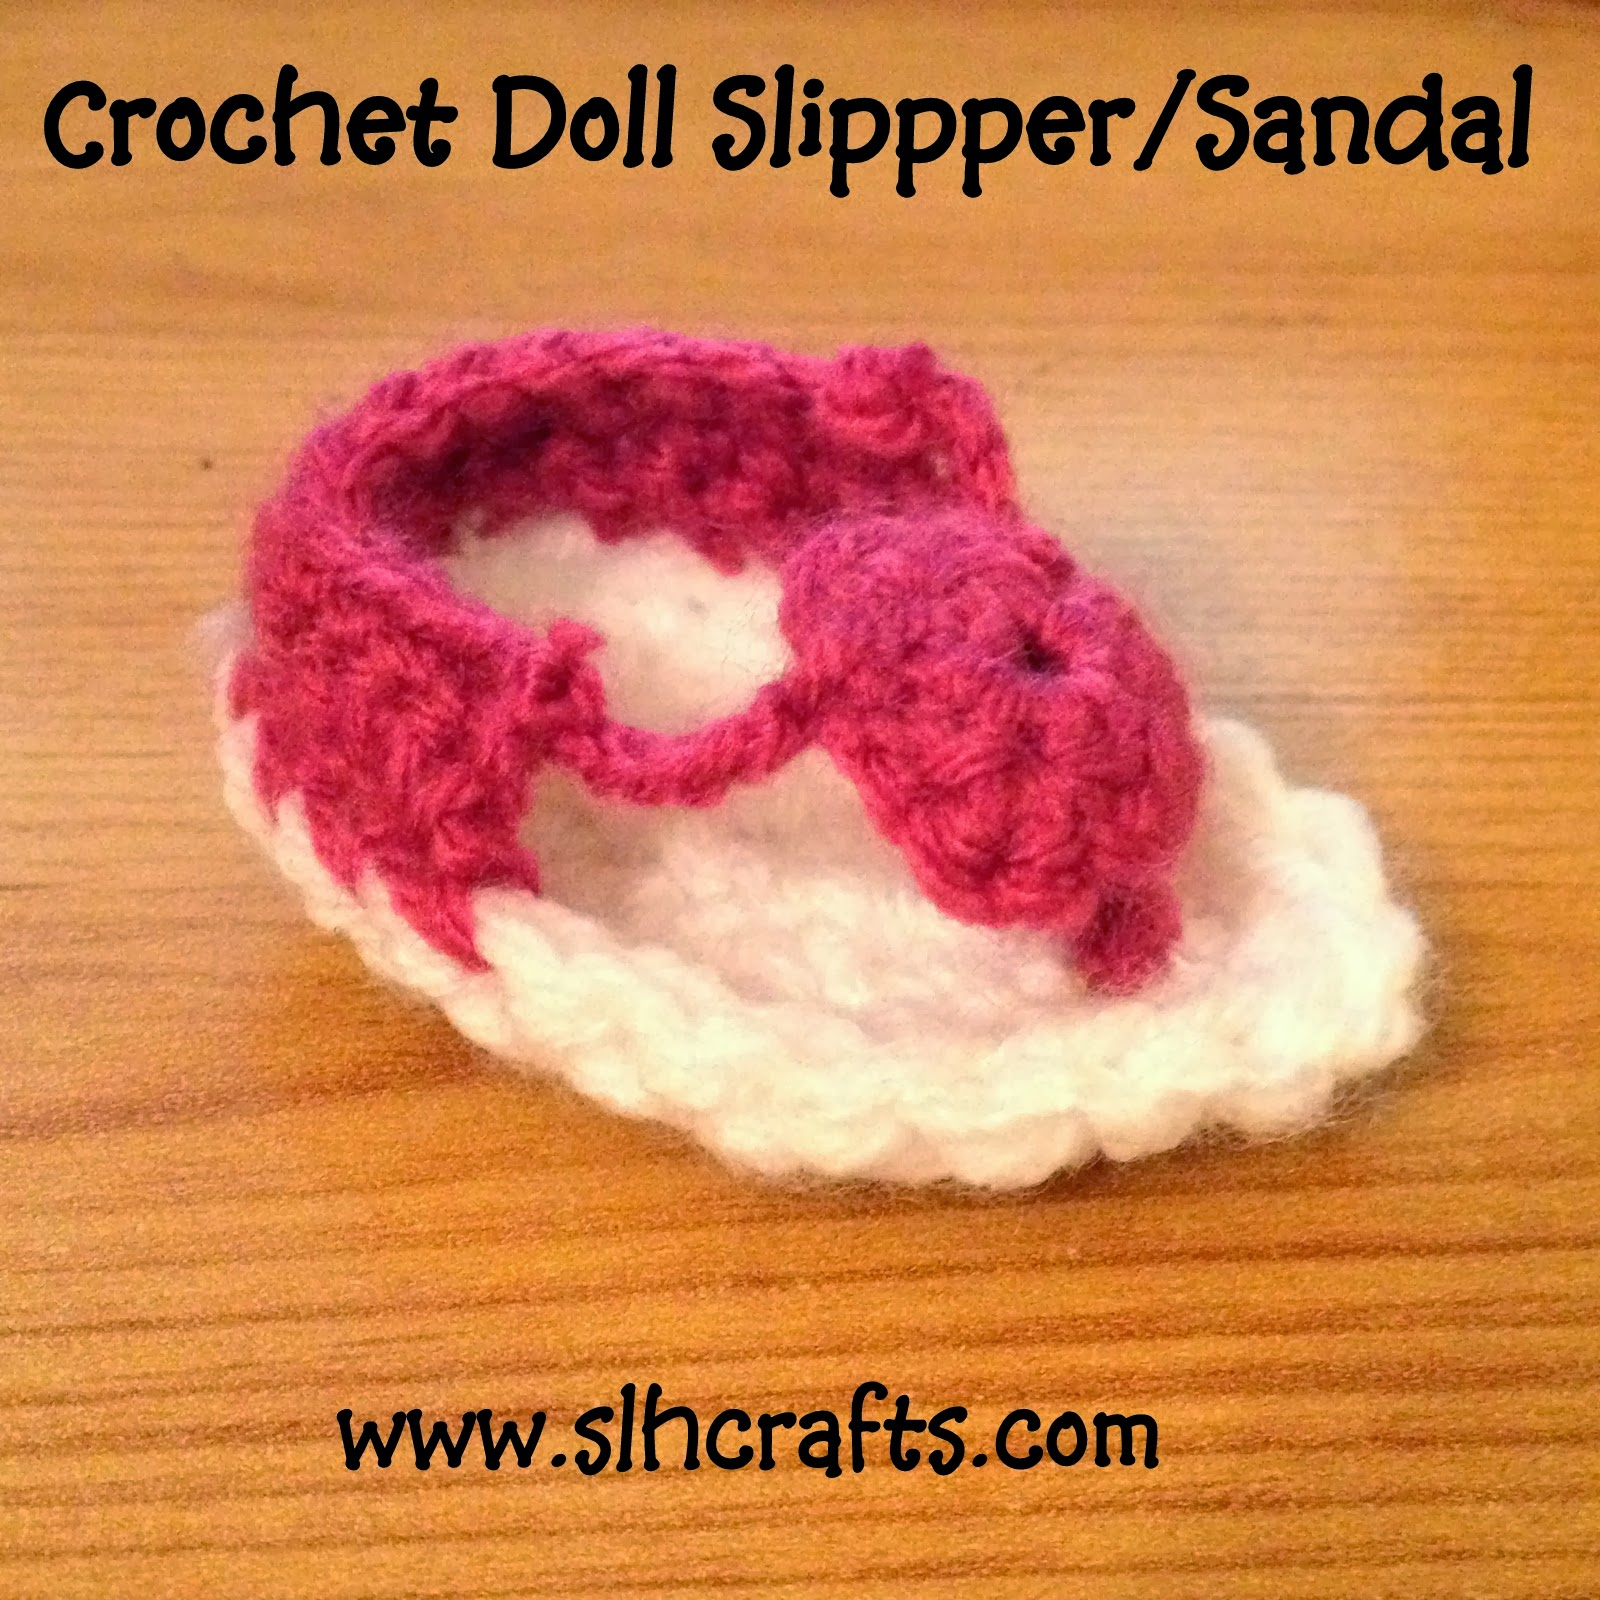 Crochet Slipper Sandal